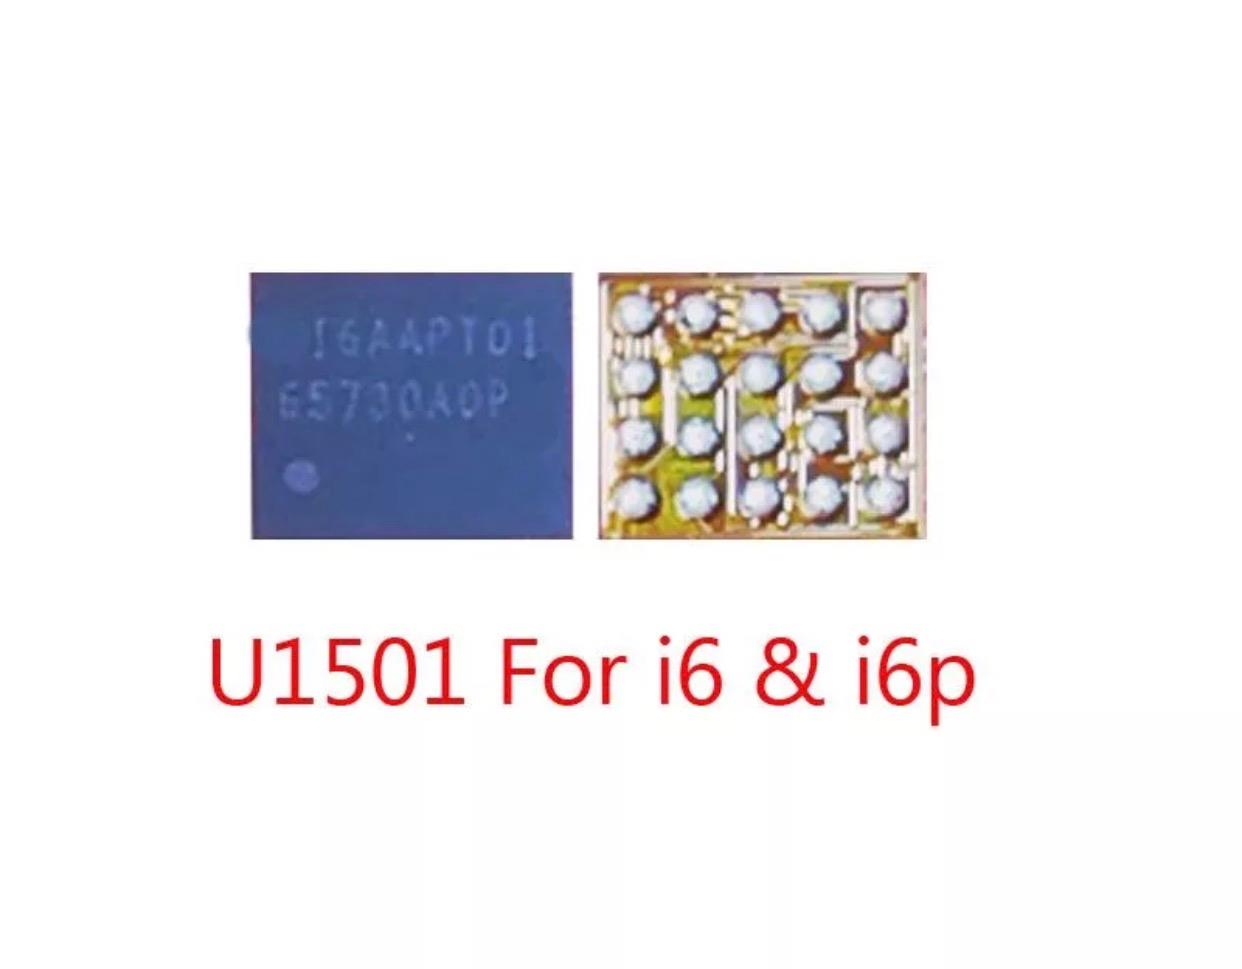 For iPhone 6S/6S+/6/6+ U1501 5S 5C Display IC 20 pins chip 65730AOP